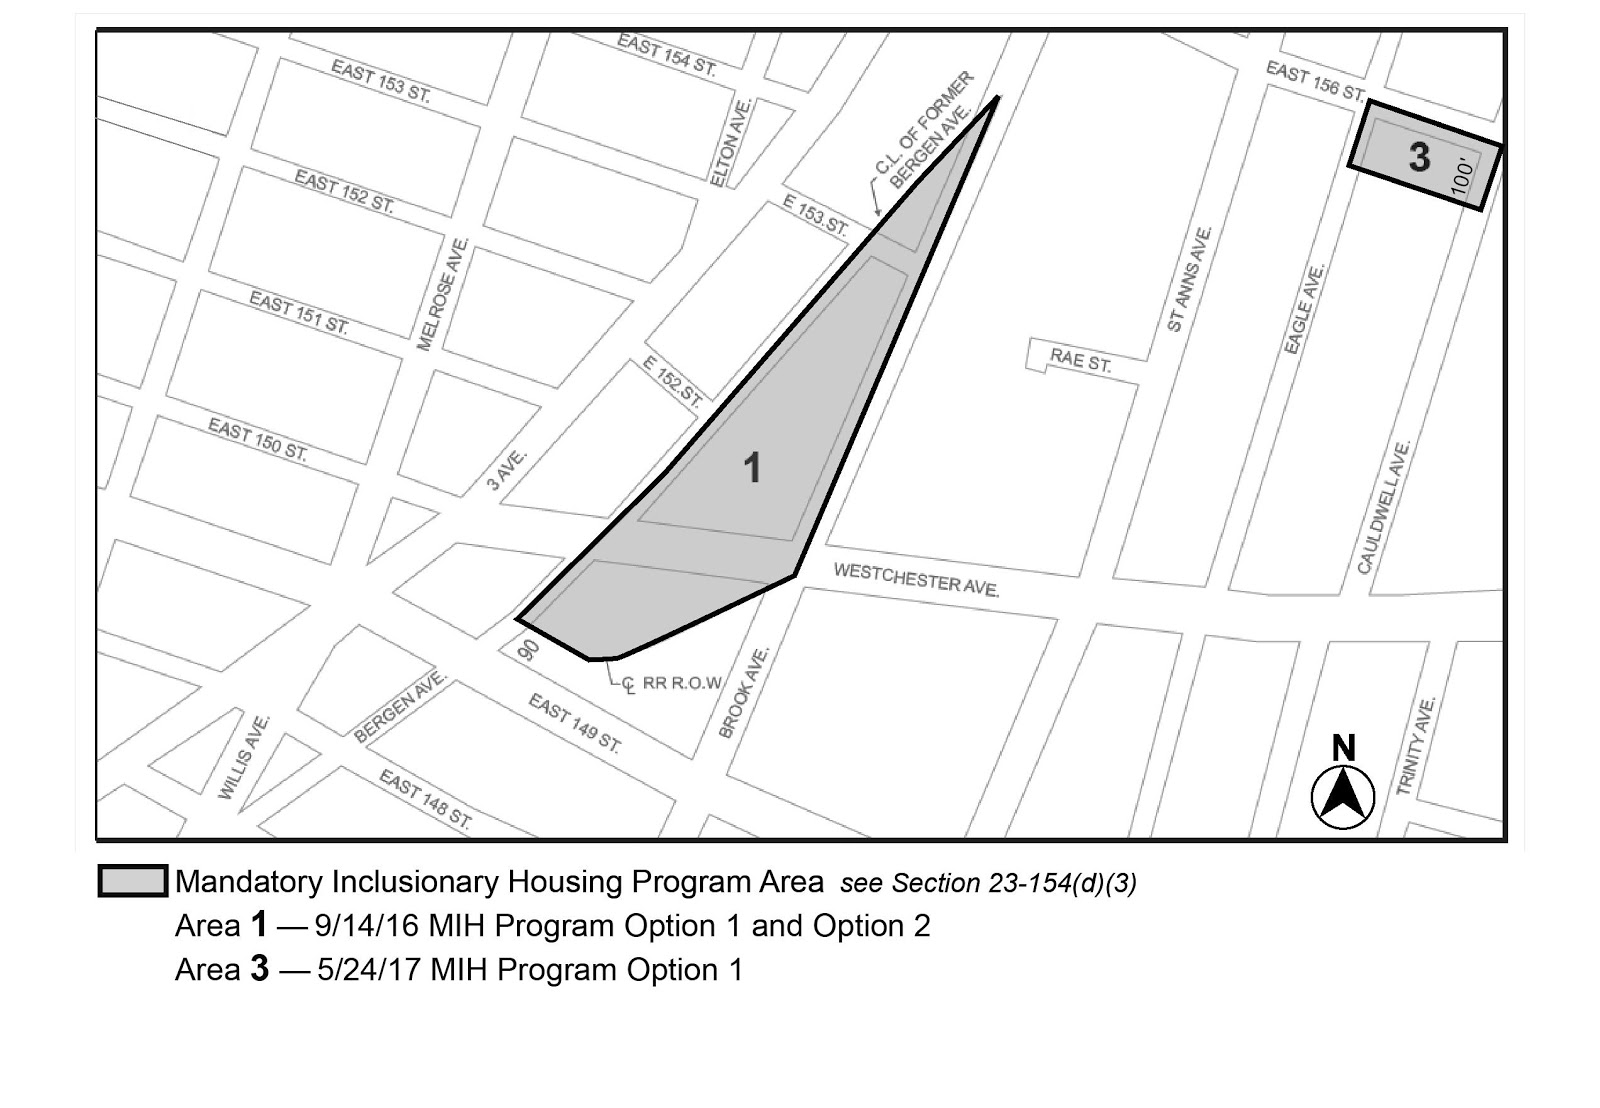 Zoning Resolutions F-Inclusionary Housing Designated Areas and Mandatory Inclusionary Housing Areas_2.6